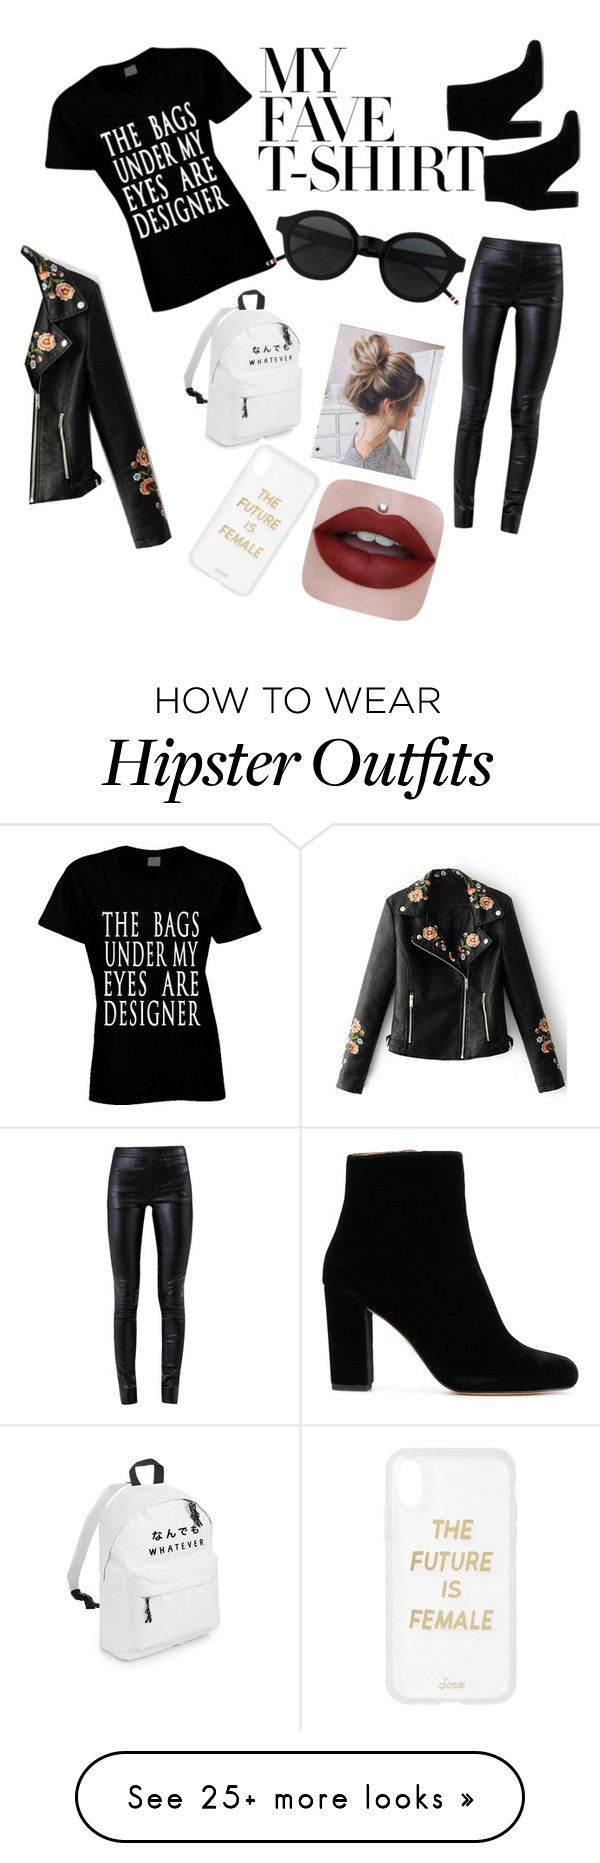 """""""tired"""" by knstare on Polyvore featuring Helmut Lang, WithChic, Sonix and MyFaveTshirt"""